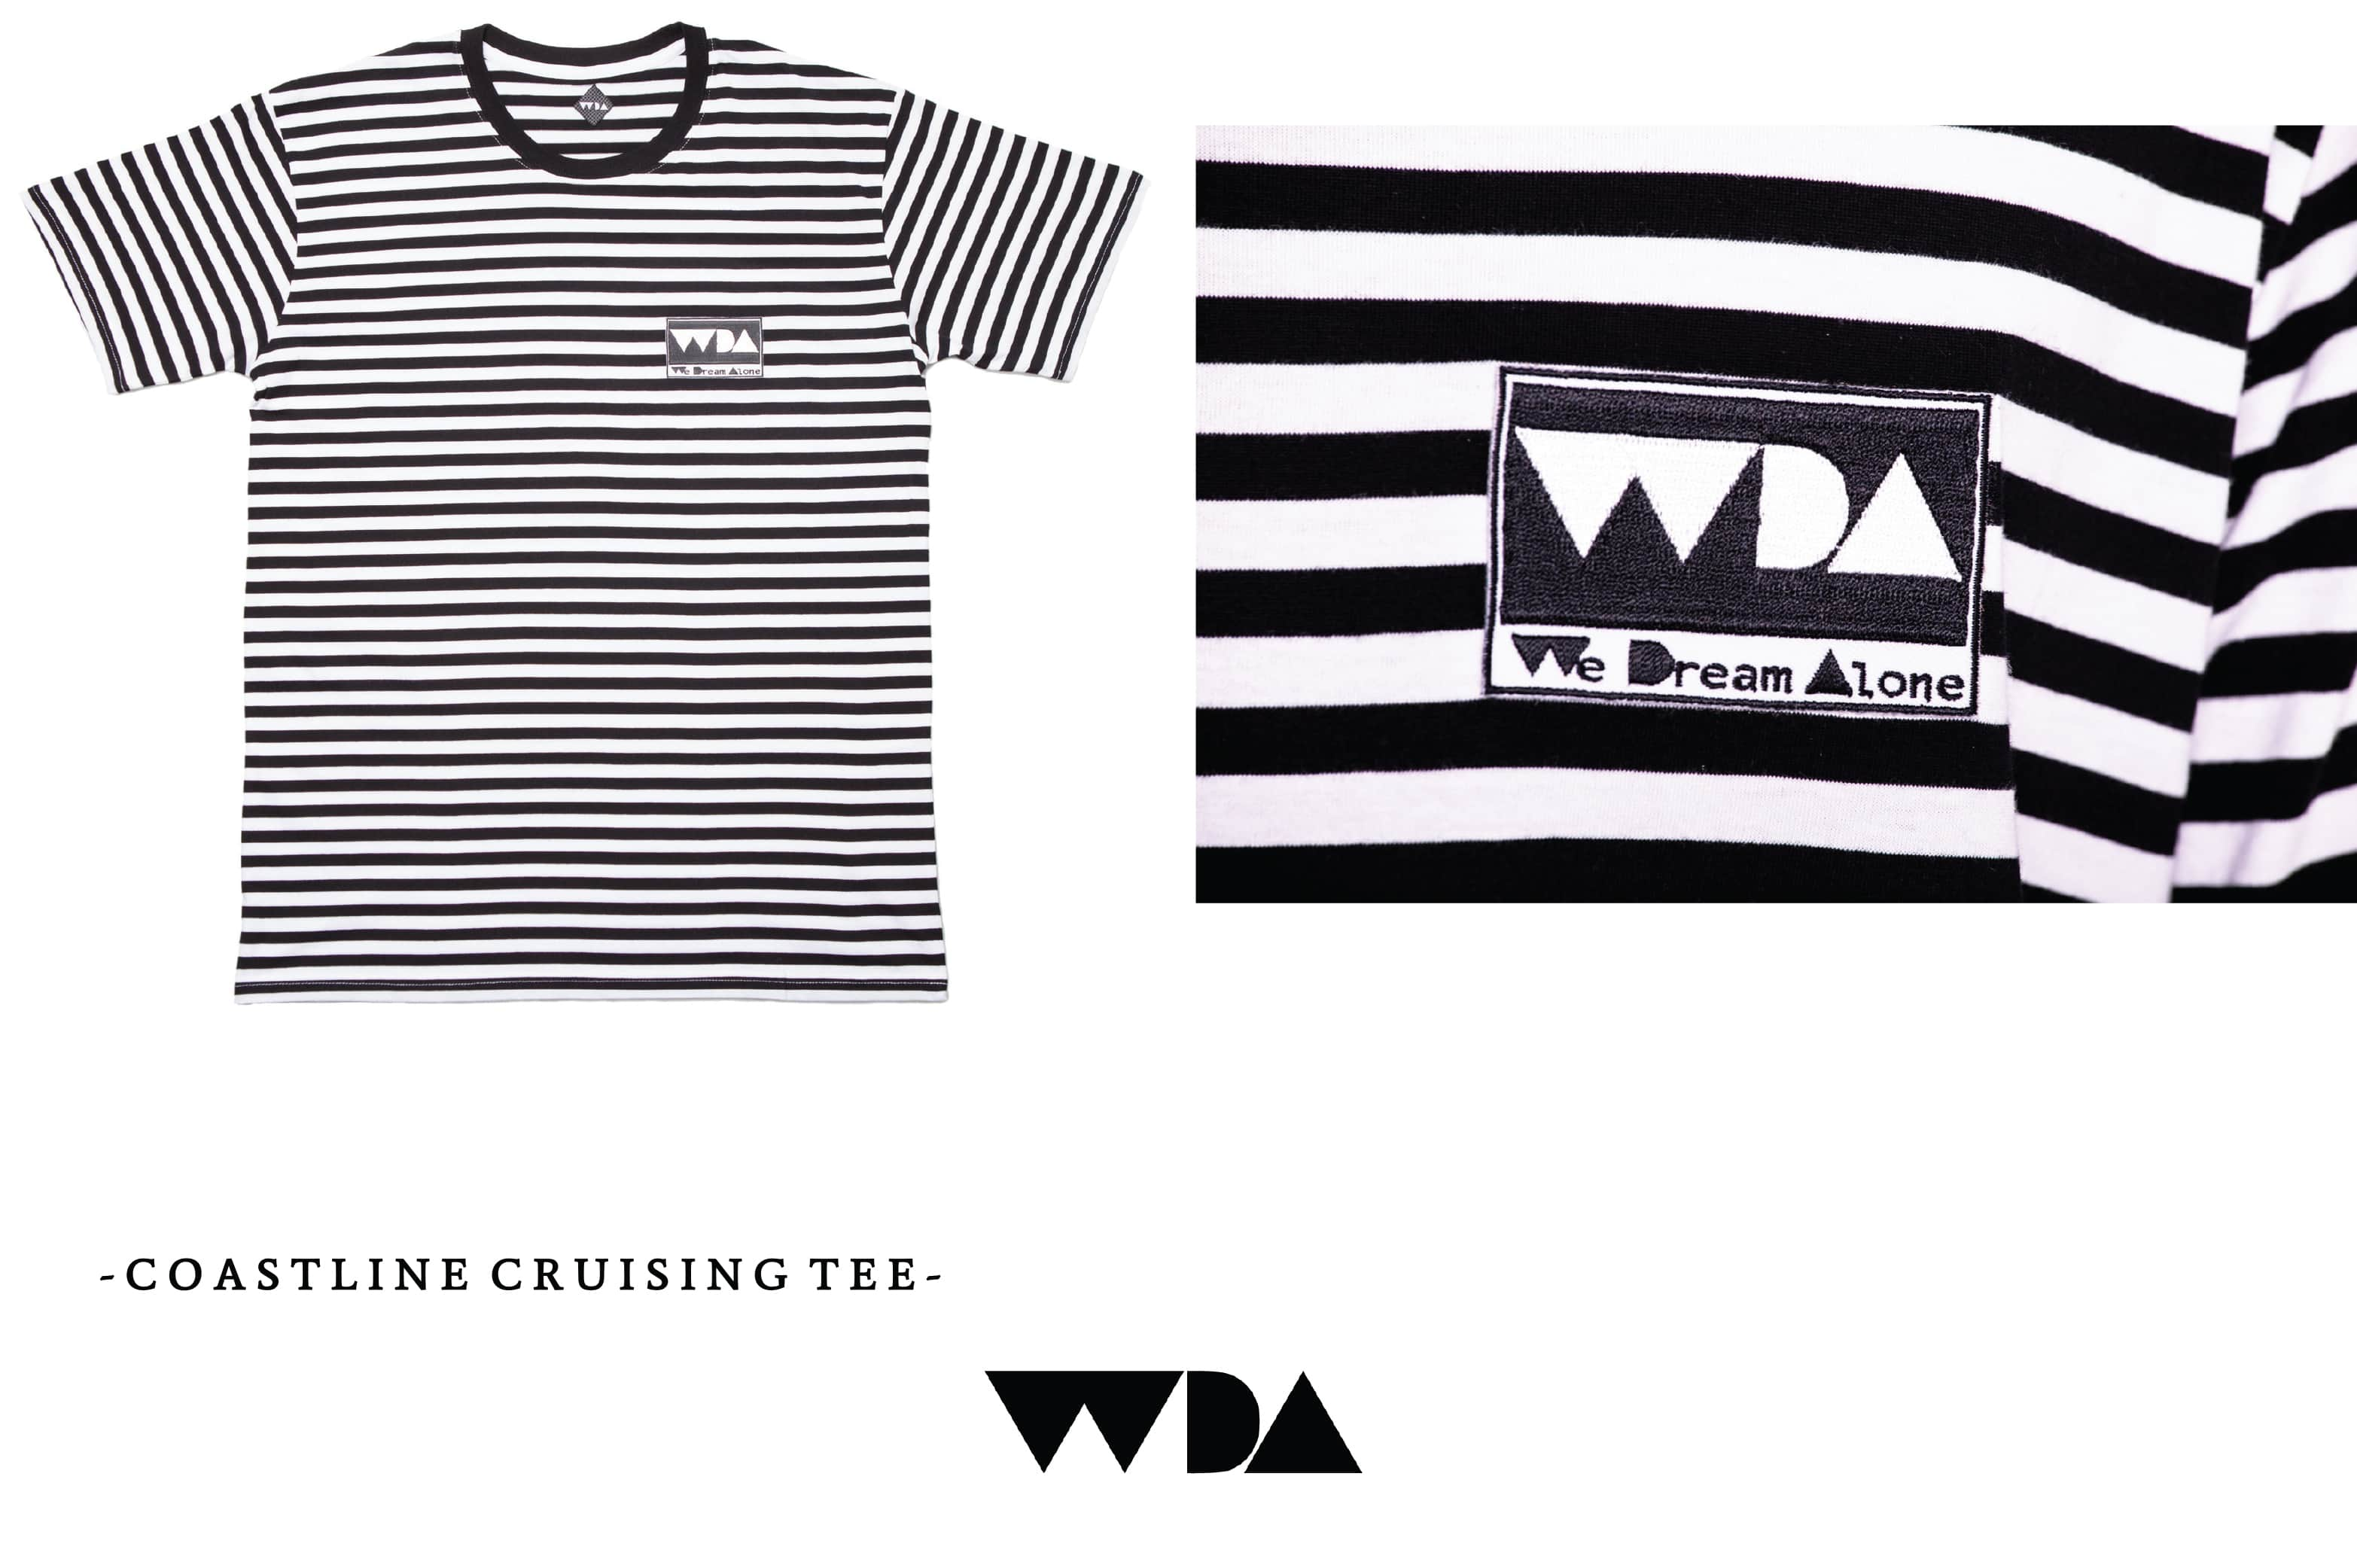 WDA, WE DREAM ALONE, CLOTHING, APPAREL, MENS, TEE, COASTLINE, BLACK, WHITE, STRIPE